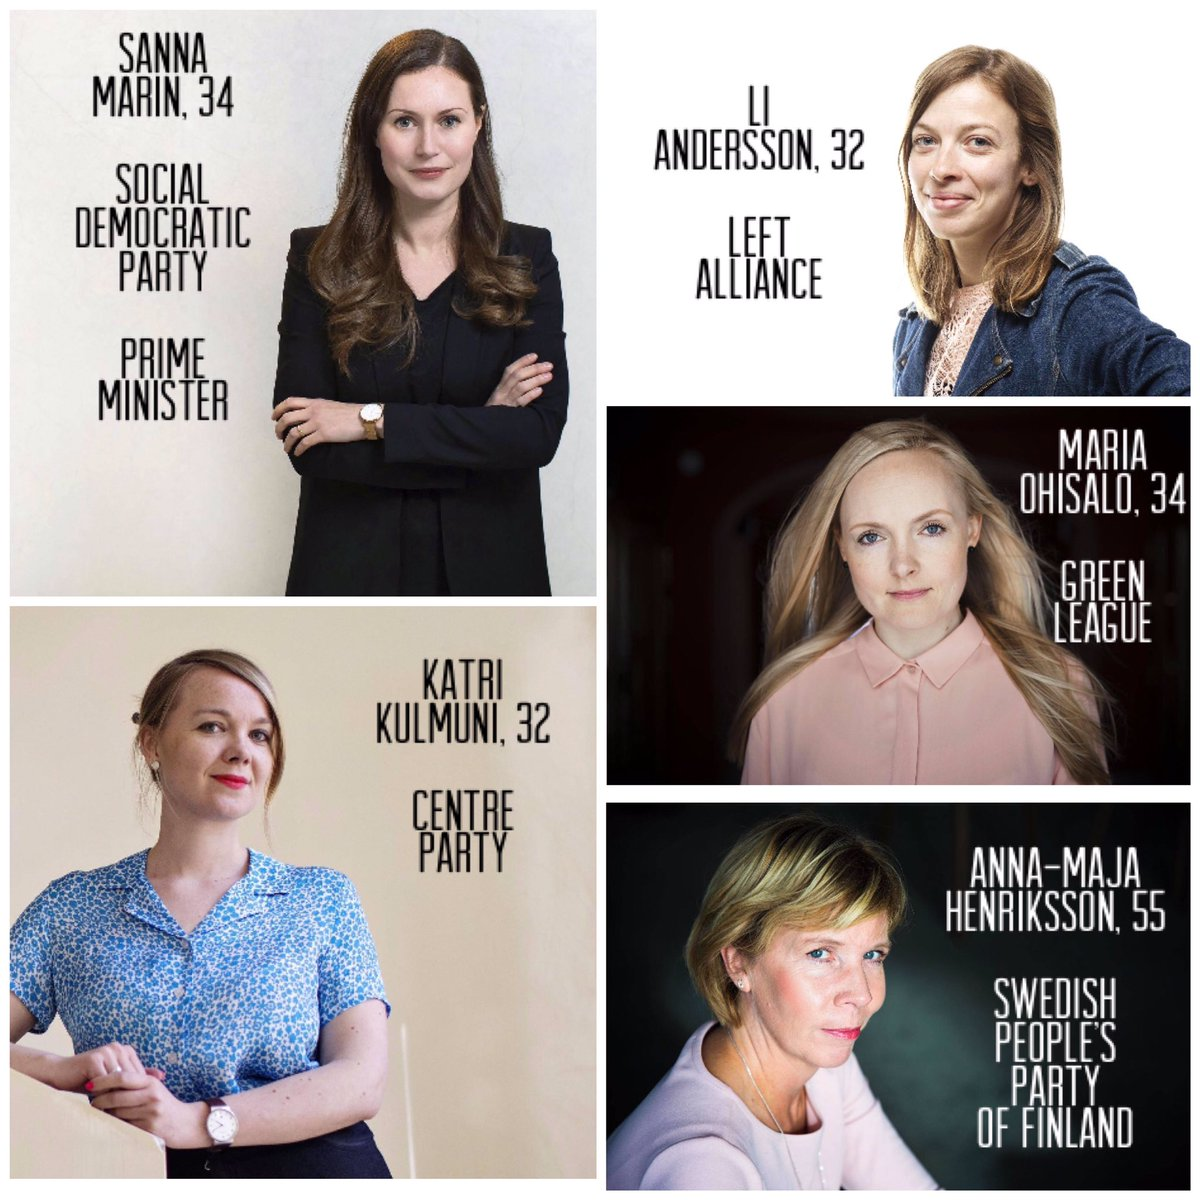 At 34, Finland's Sanna Marin is world's youngest PM